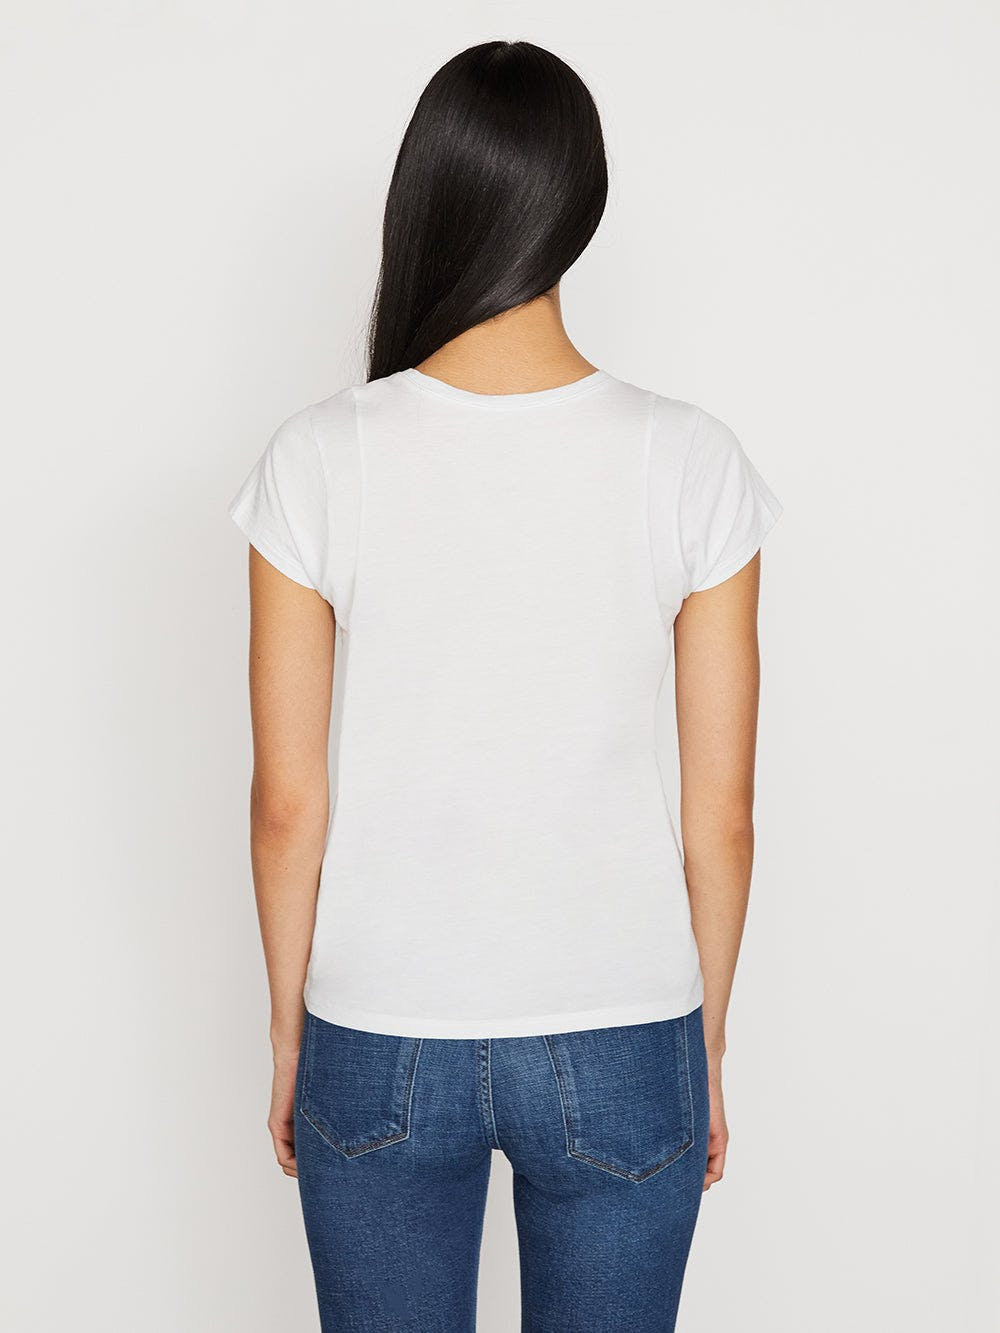 tee back view